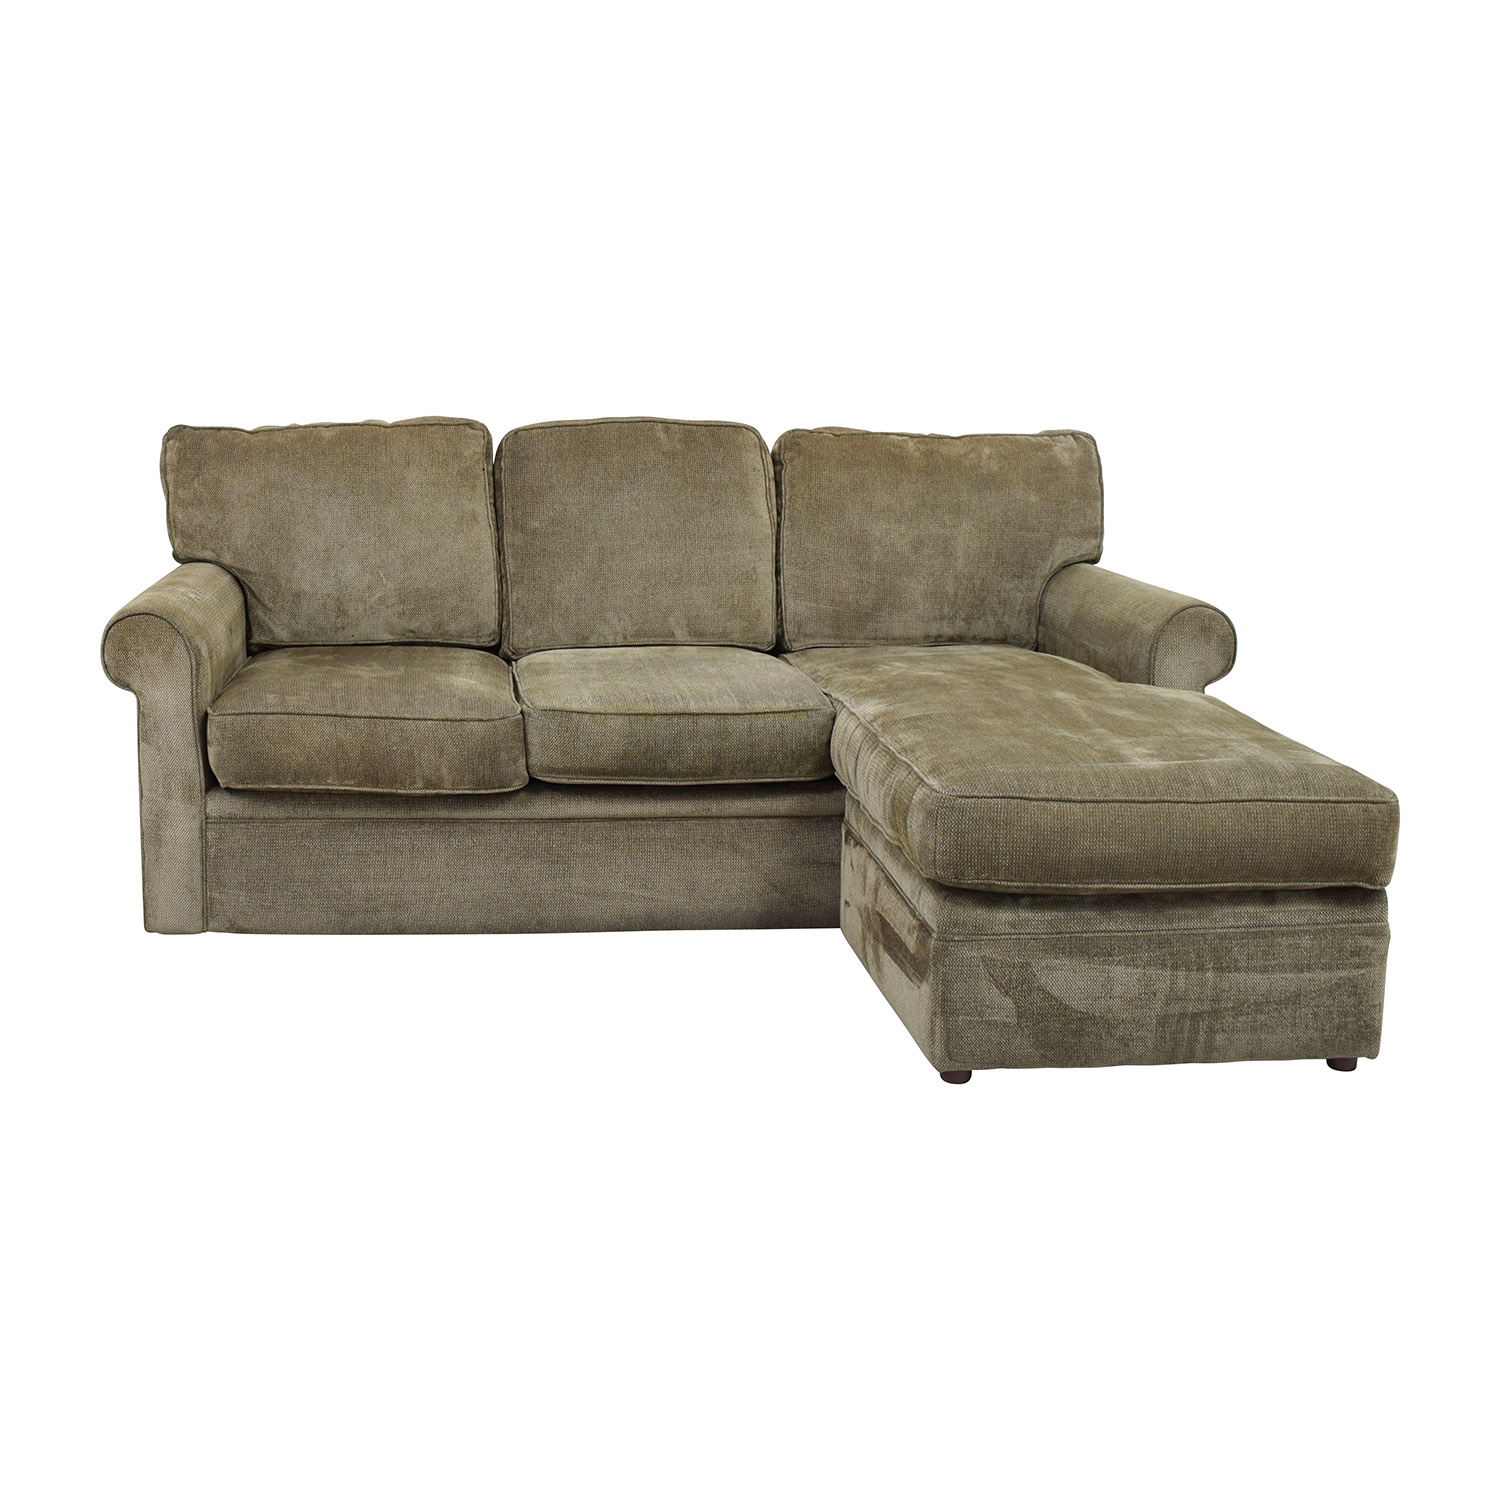 67% OFF - Rowe Furniture Rowe Furniture Green Sectional with Curved ...